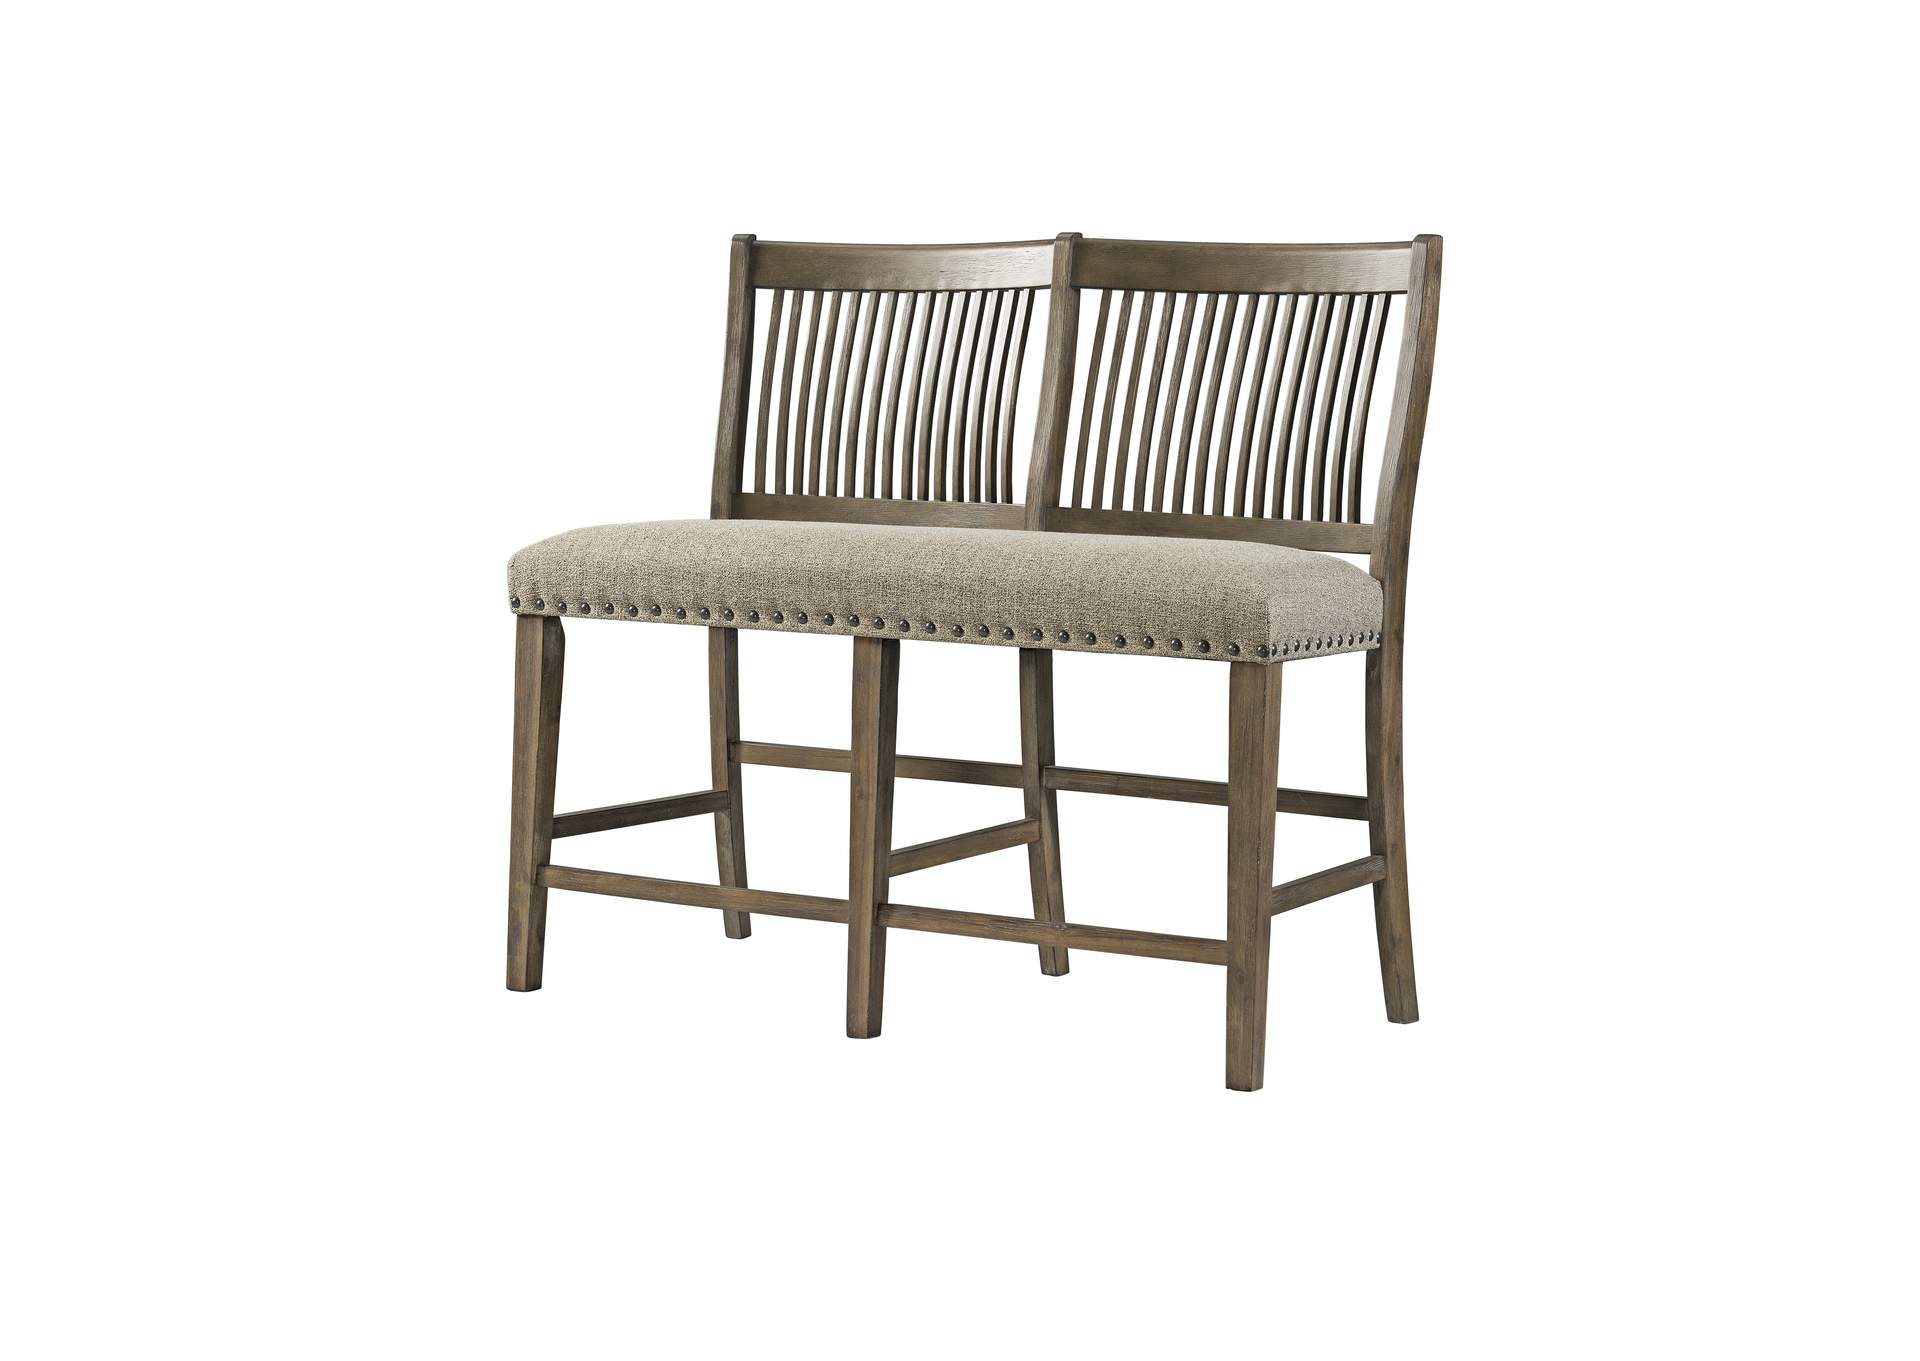 5040 Charleston 2-Pack Upholstered Side Chair,Lane Furniture